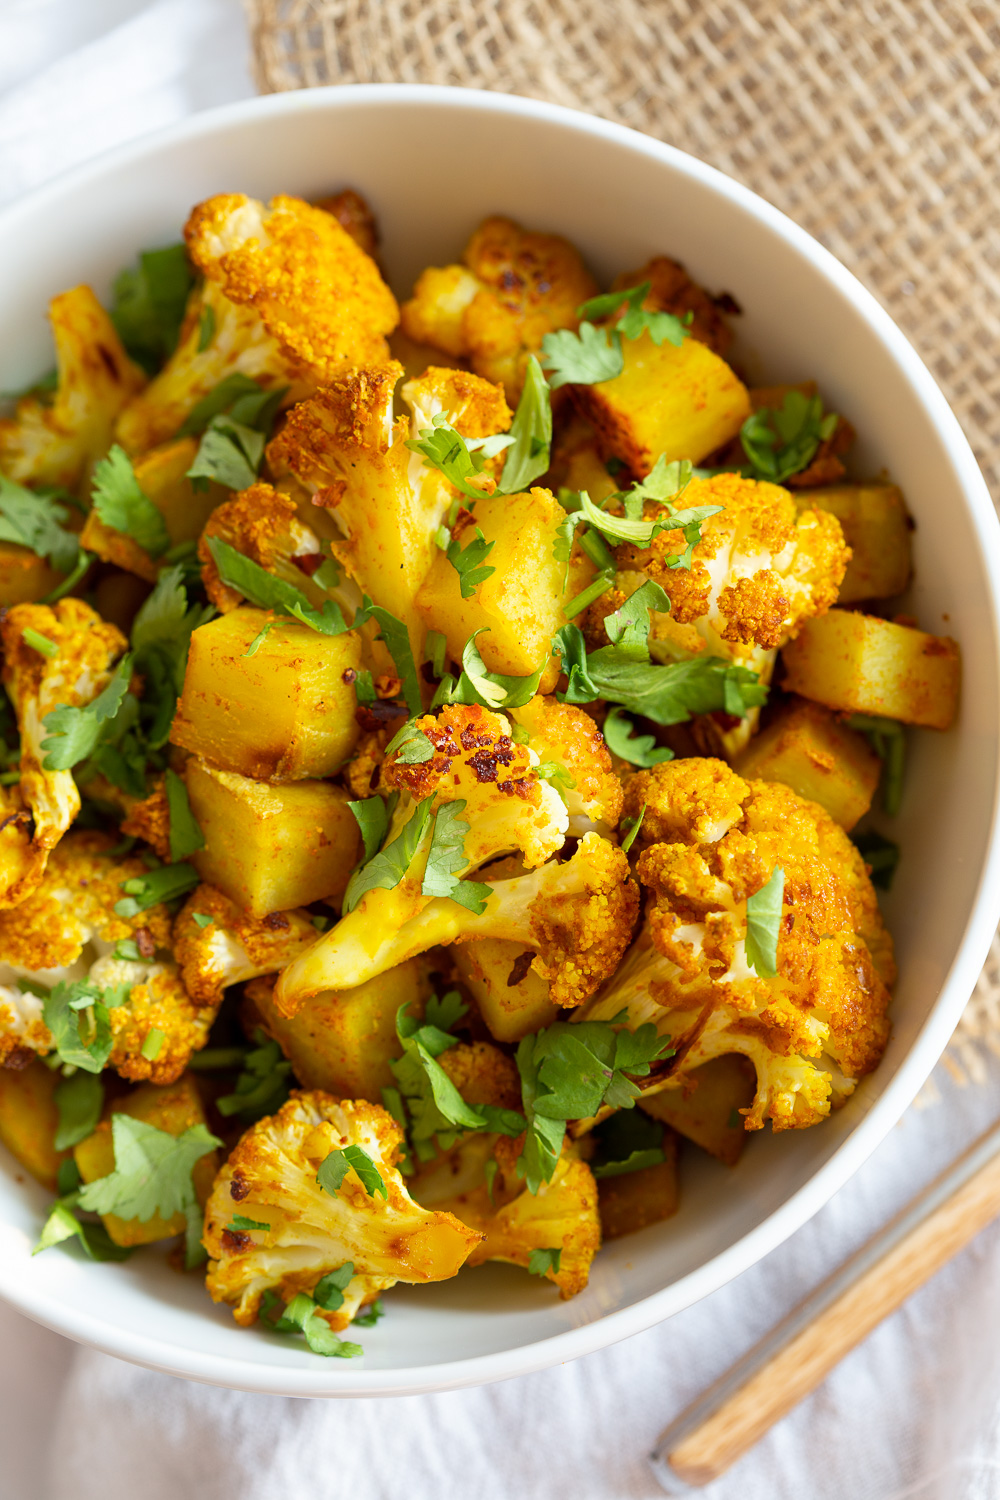 Baked Aloo Gobi Vegan Recipe Indian Spiced Potato Cauliflower